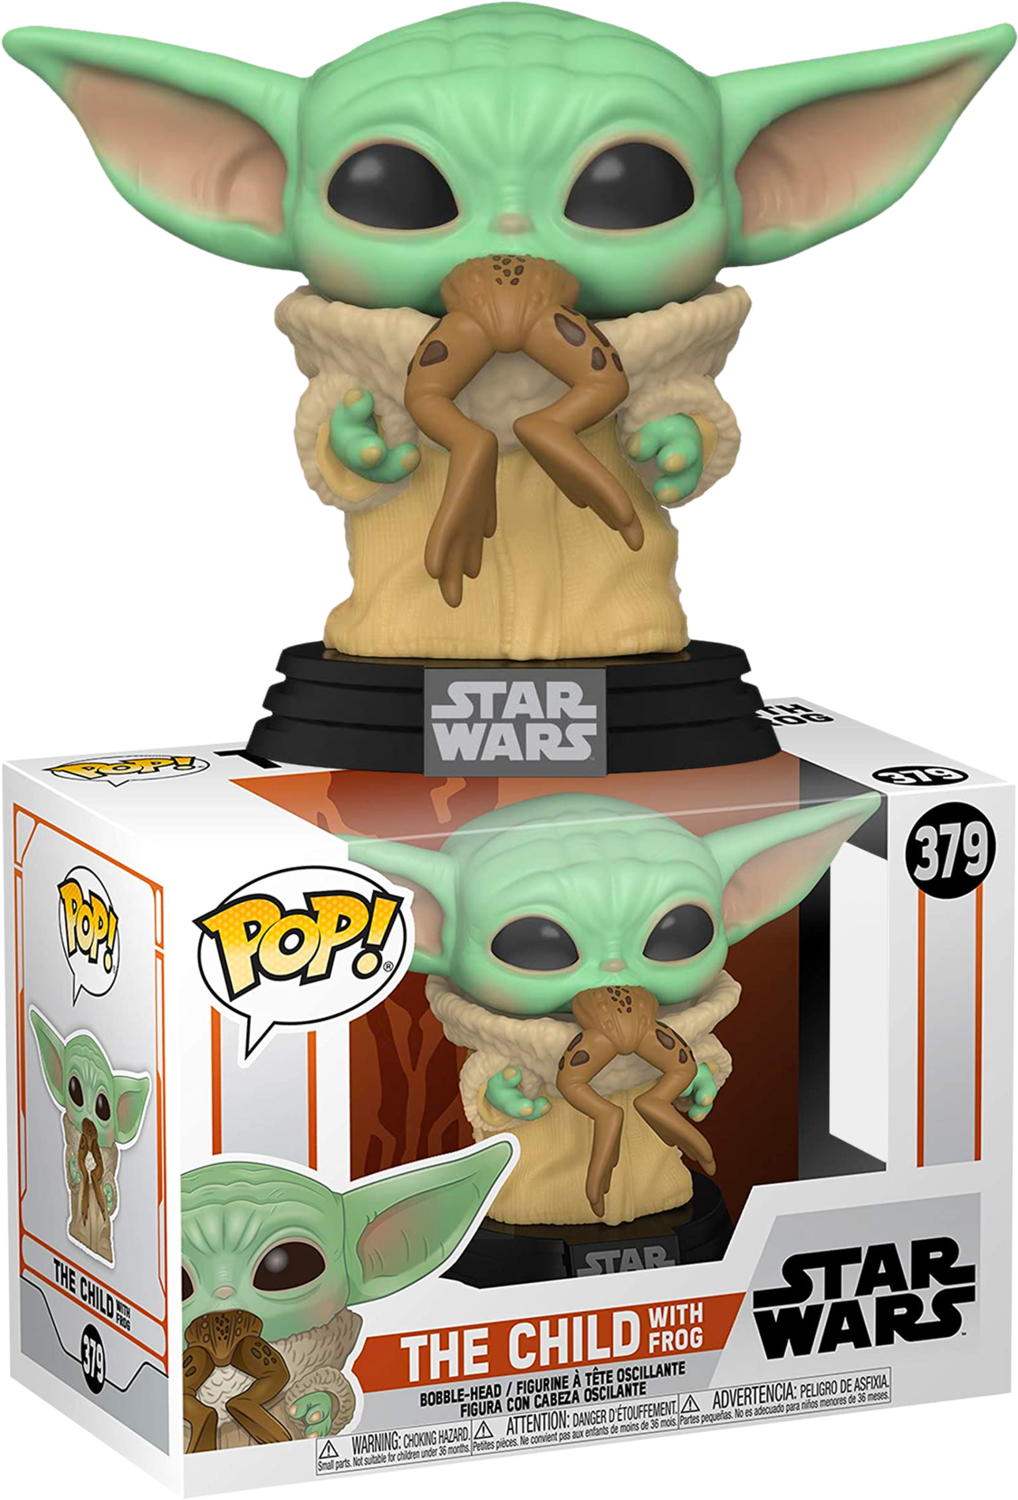 Star Wars: The Mandalorian - The Child (Baby Yoda) with Frog Pop! Vinyl Figure